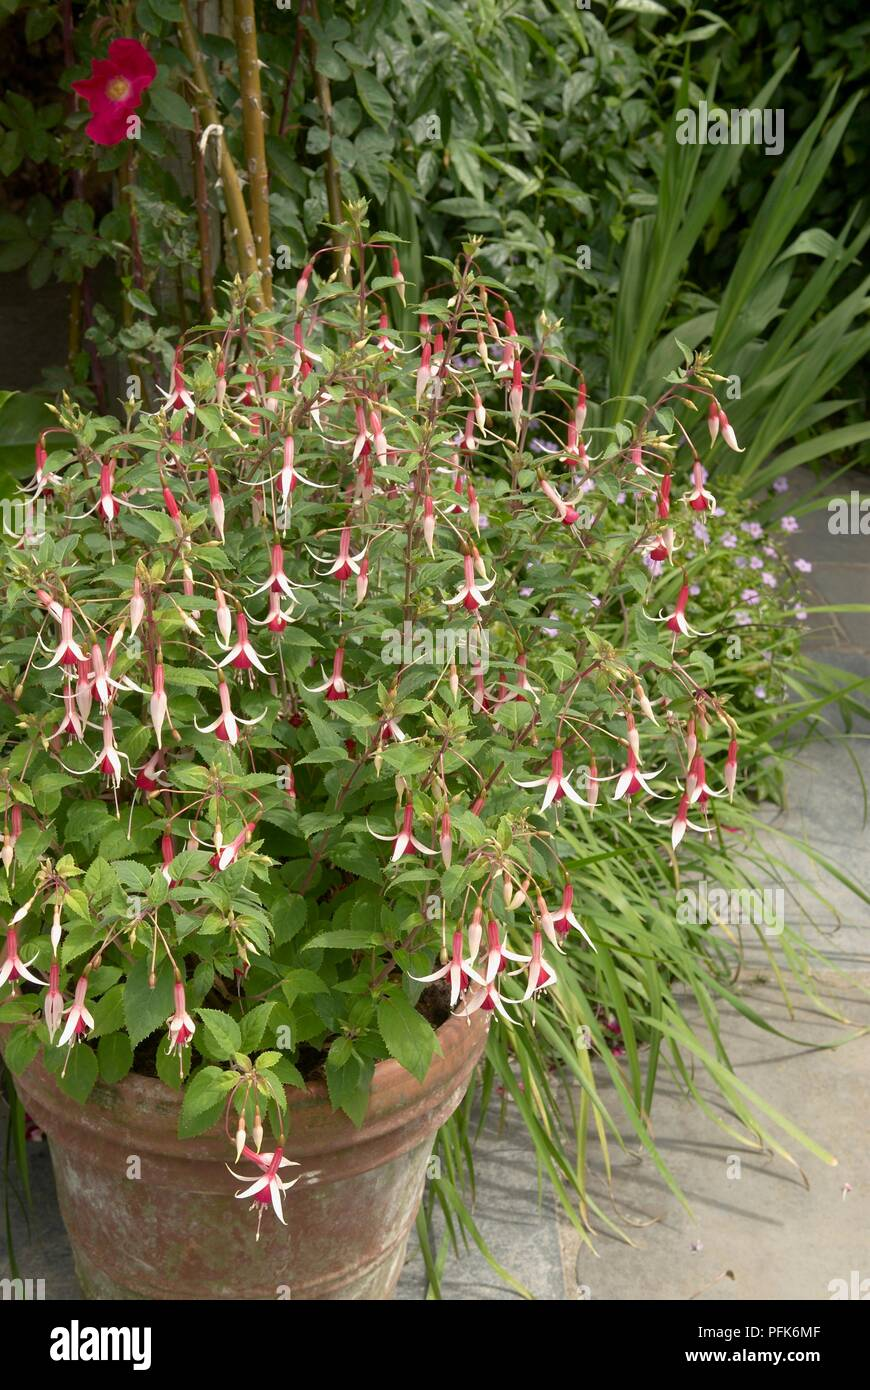 Fuchsia And Other Potted Plants On Patio, Close Up